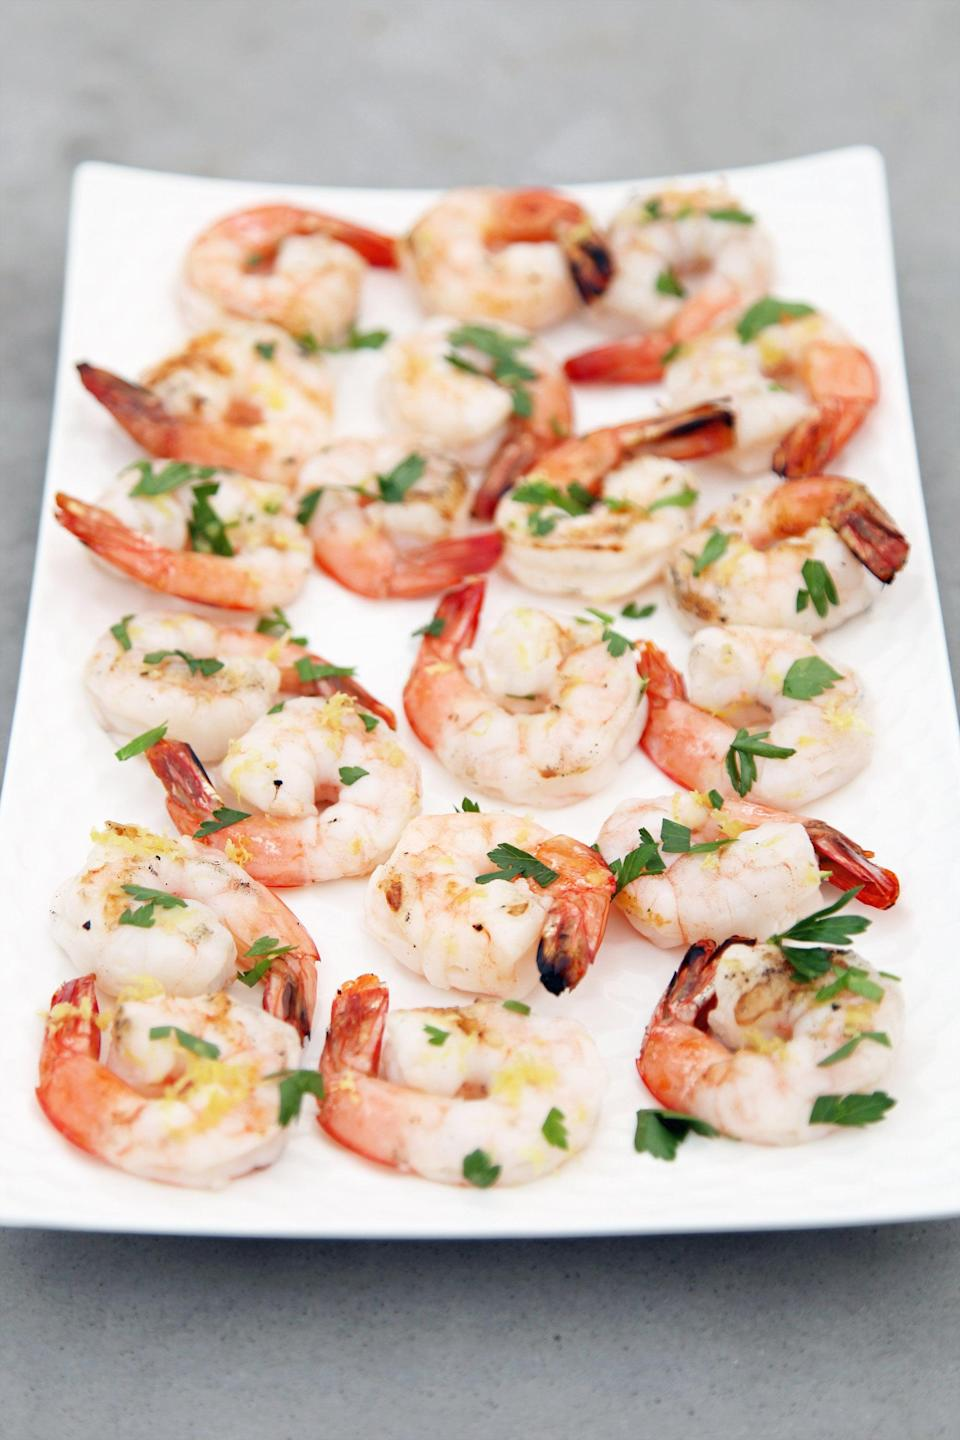 "<p><strong>Get the recipe:</strong> <a href=""http://www.popsugar.com/food/Easy-Grilled-Shrimp-Lemon-Recipe-37964178/"" class=""link rapid-noclick-resp"" rel=""nofollow noopener"" target=""_blank"" data-ylk=""slk:grilled shrimp with lemon"">grilled shrimp with lemon</a></p>"